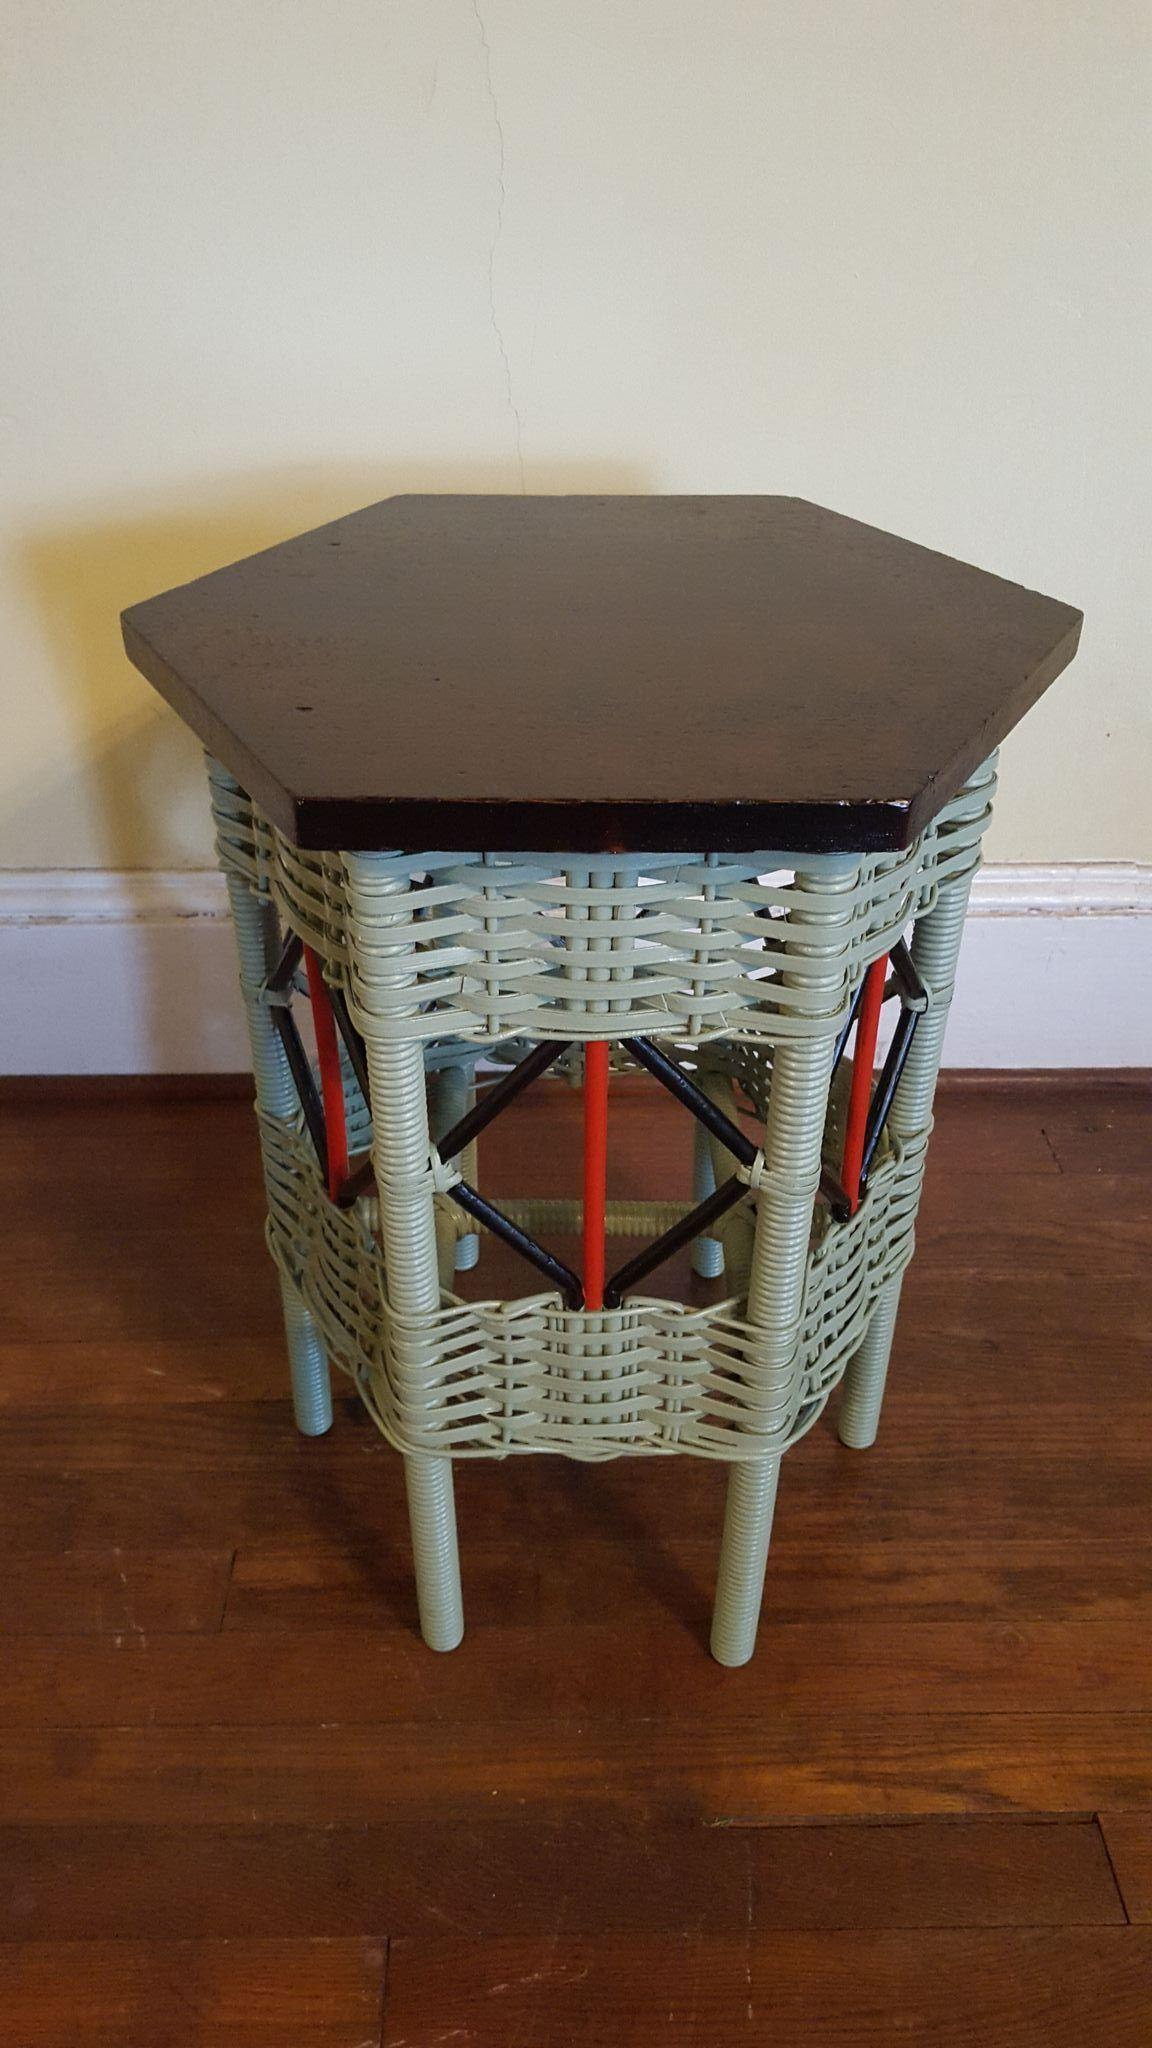 vintage hexagonal art deco wicker tabouret table circa 1920 39 s from dovetail on ruby lane. Black Bedroom Furniture Sets. Home Design Ideas